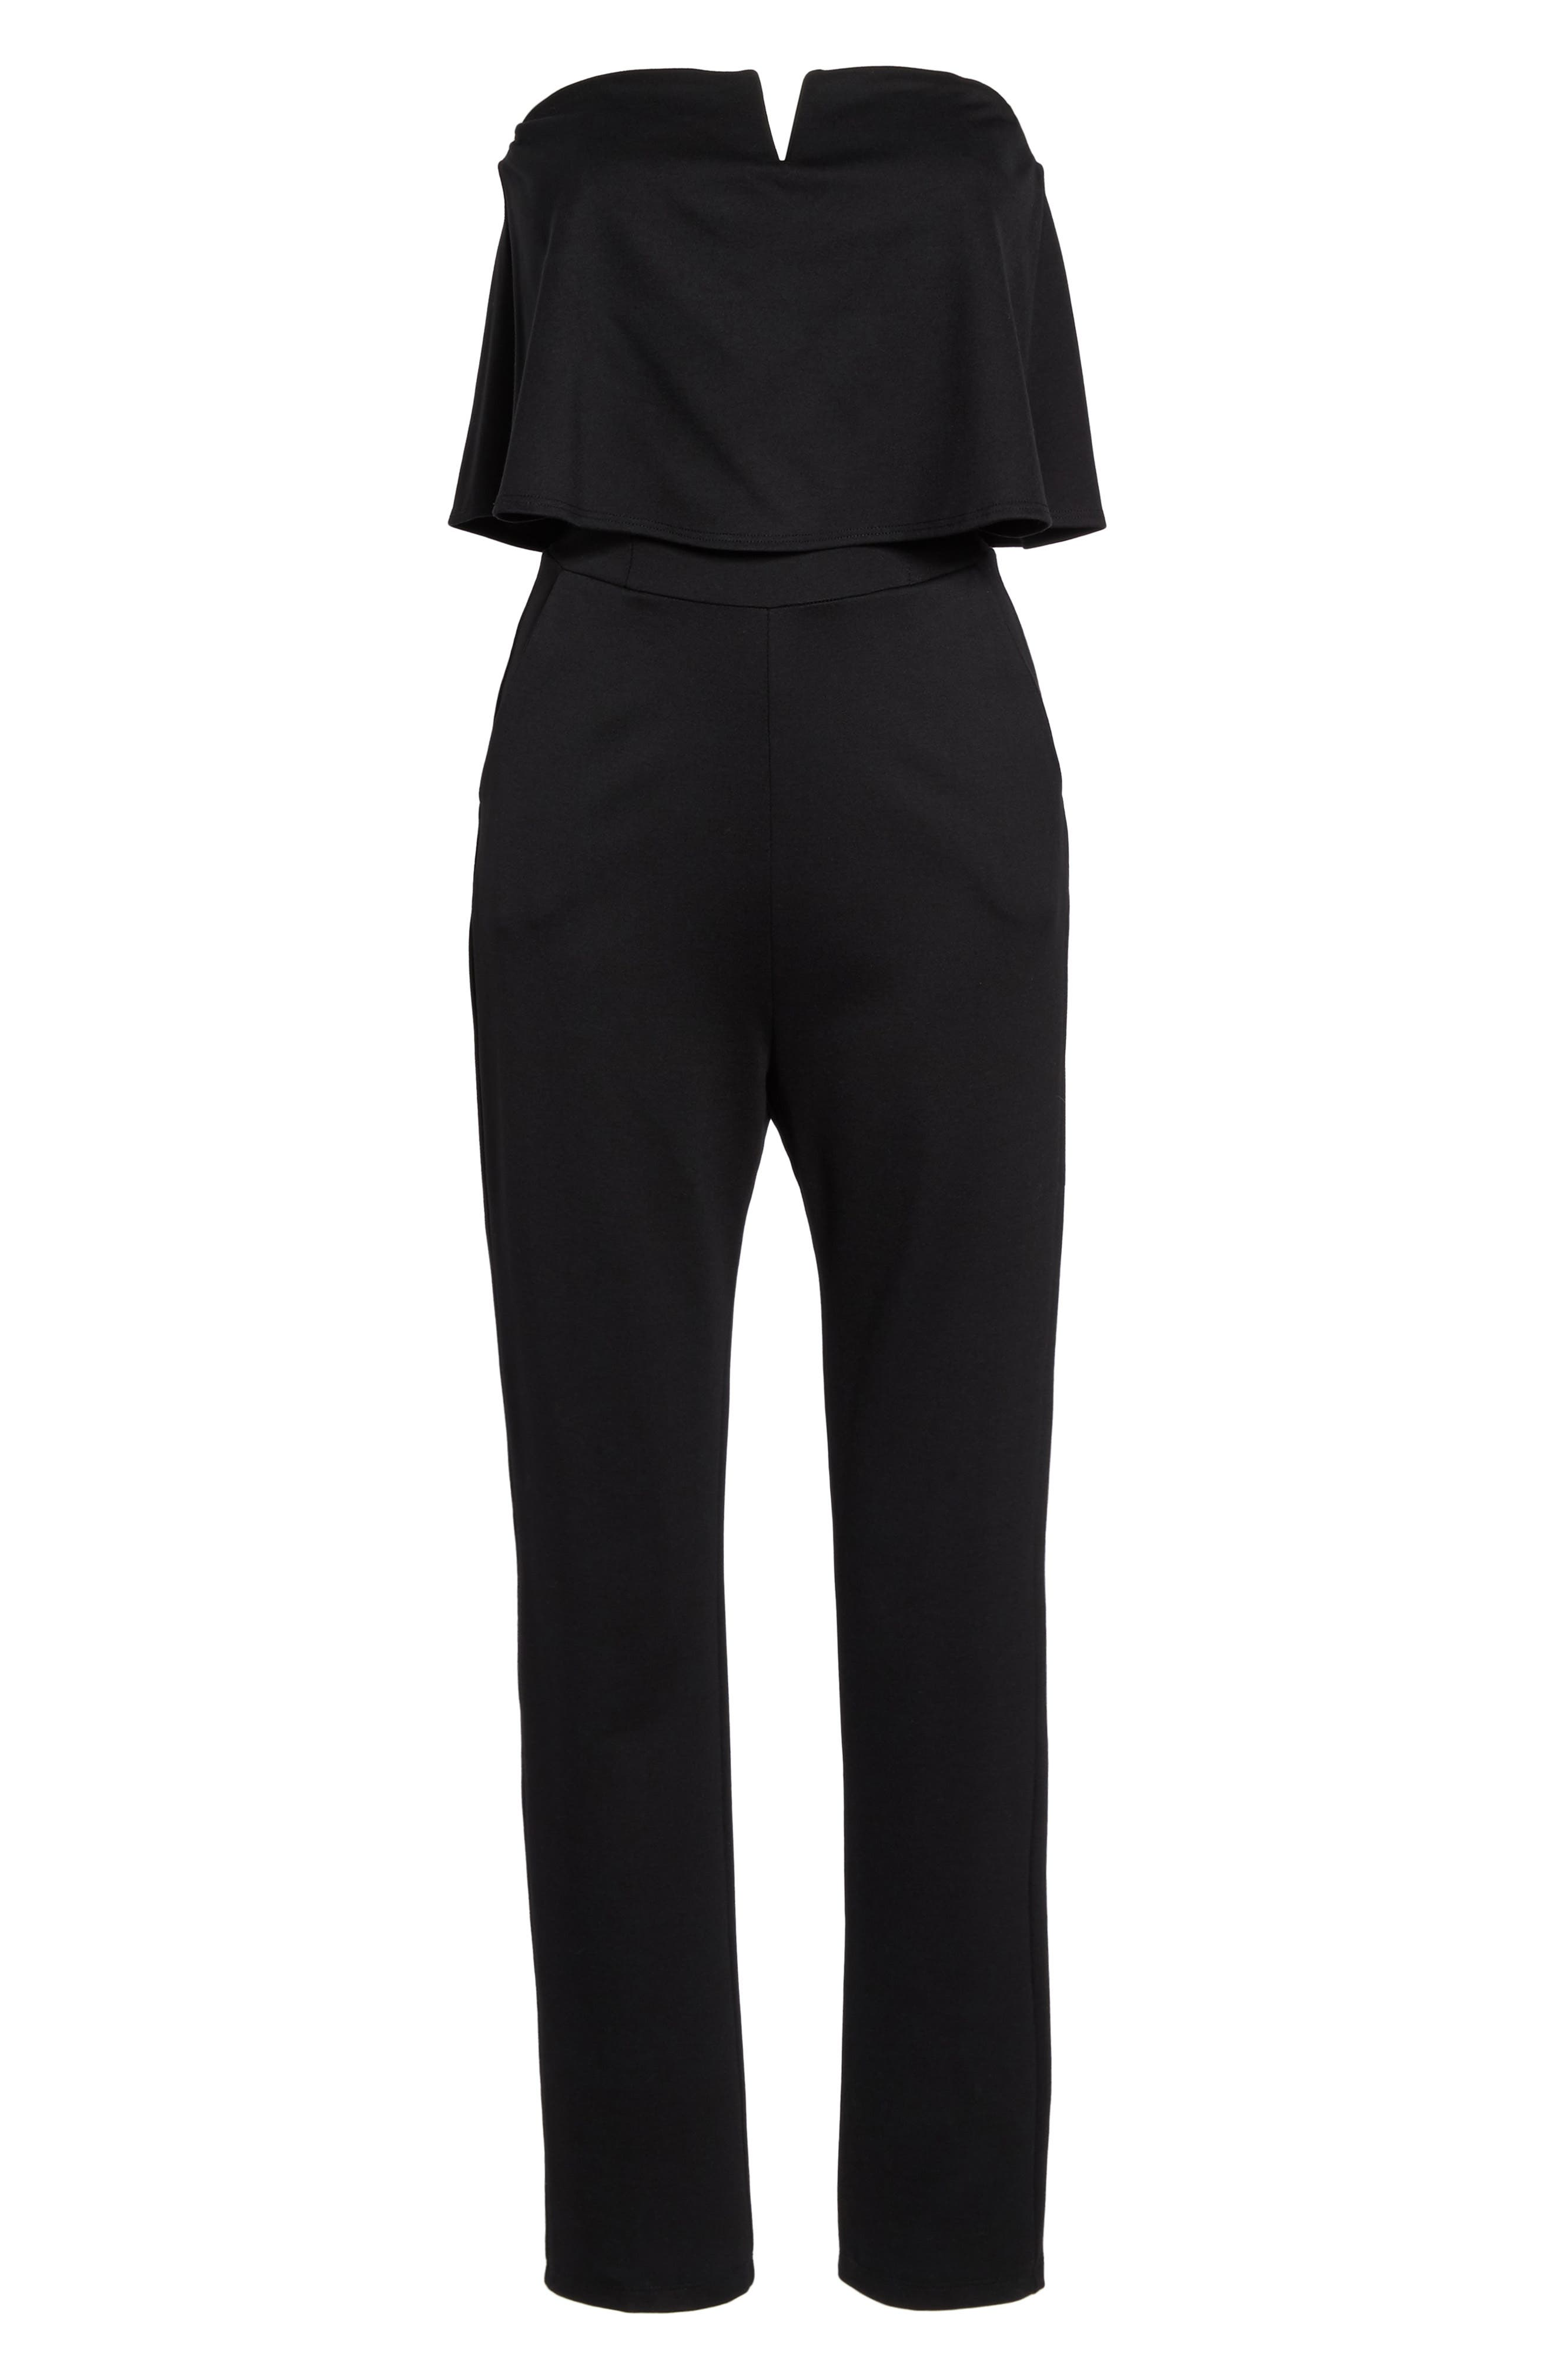 Strapless Ruffle Jumpsuit,                             Alternate thumbnail 6, color,                             Black